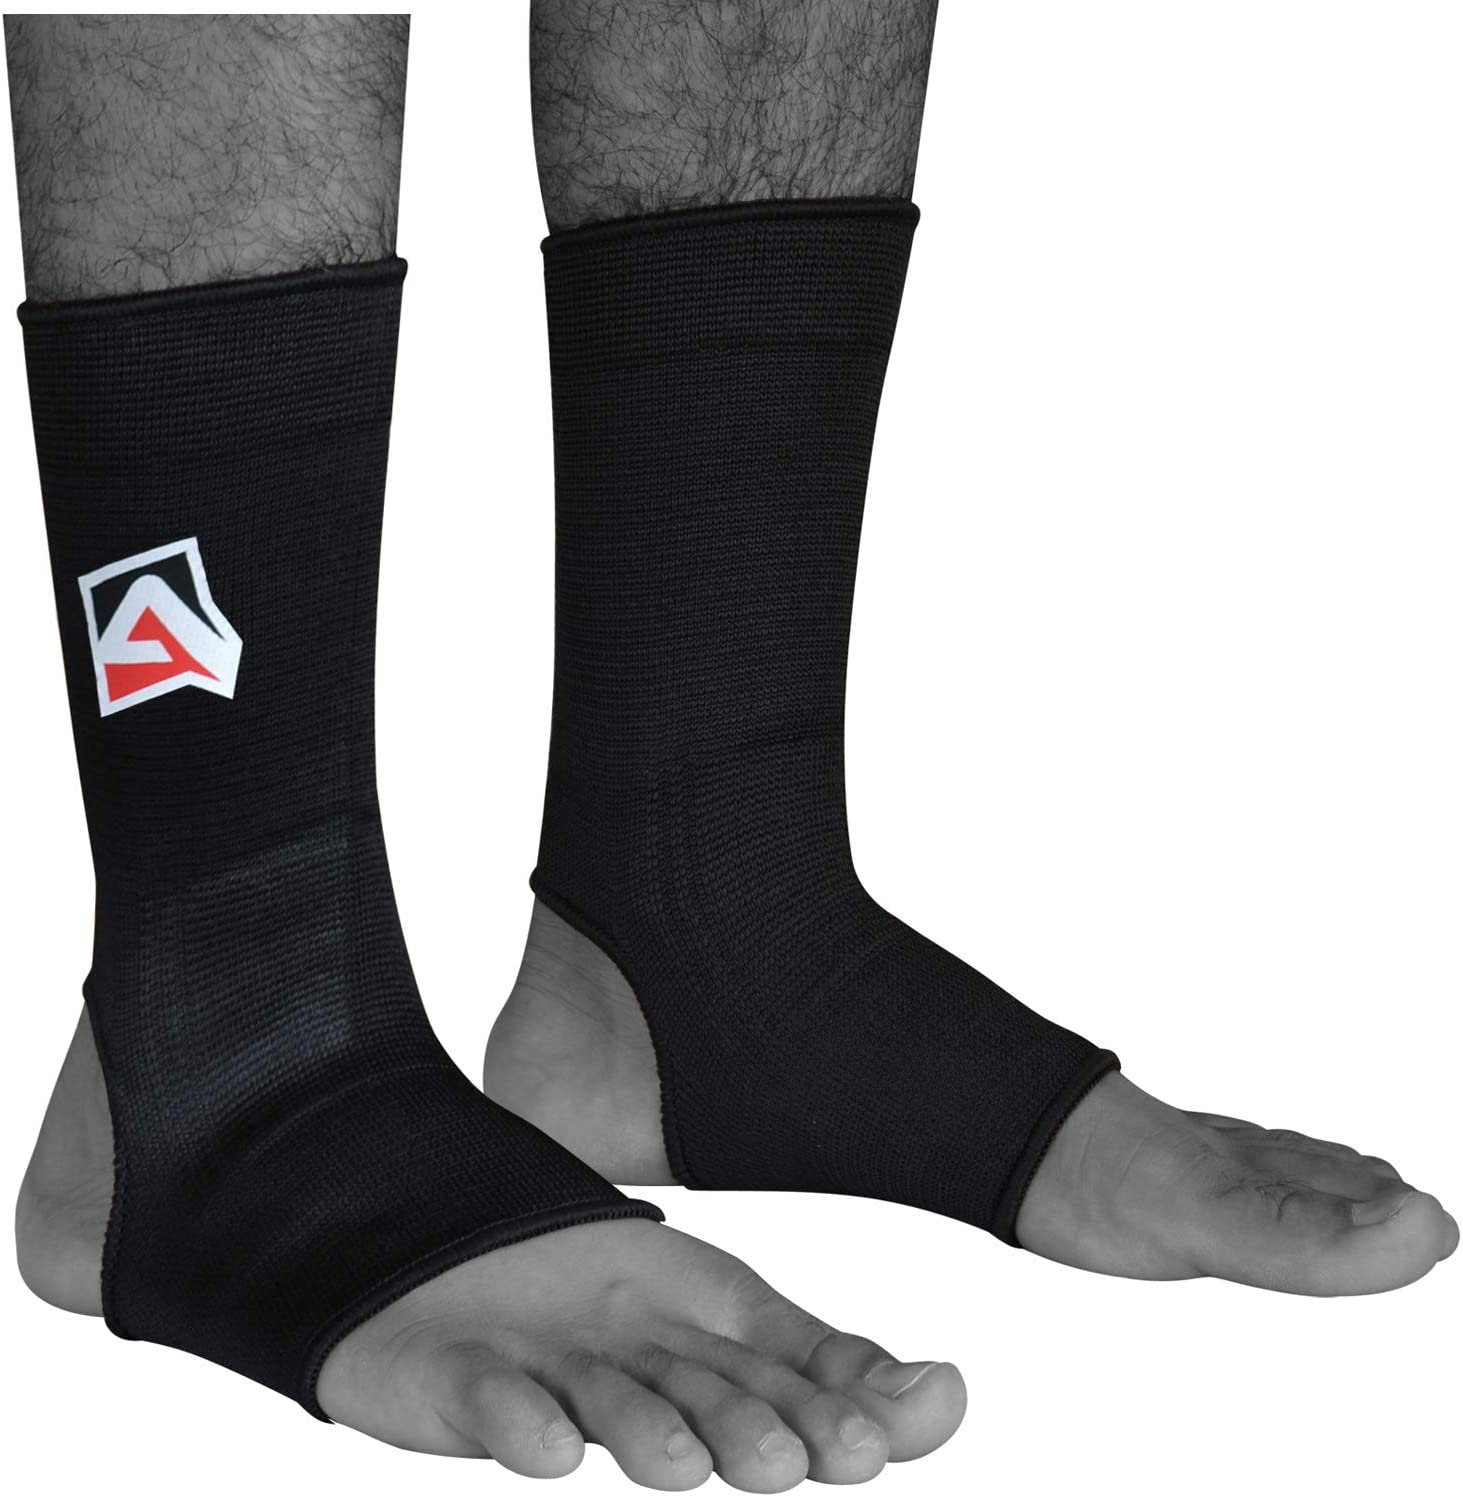 Ankle,achilles tendon,aches,sprains wrap guard protector supports MMA Muay Thai